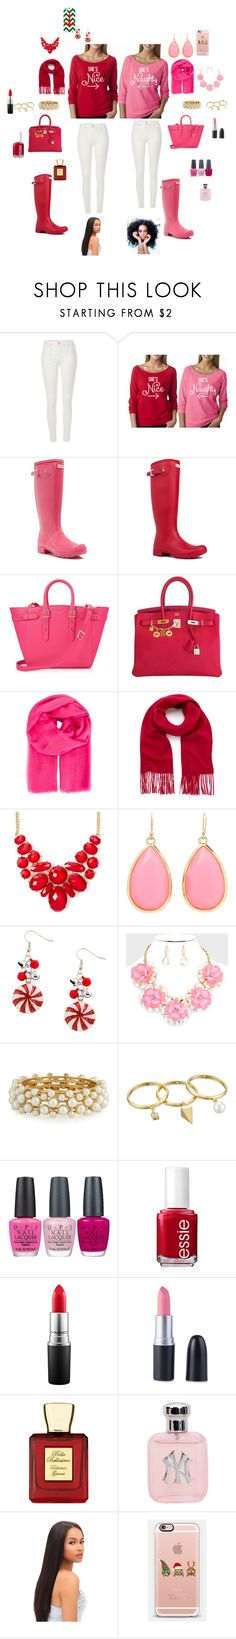 """besties chirstmas!!!!!!! #HOHOHOHO!!!!!"" by oliviaonfleek on Polyvore featuring River Island, Hunter, Aspinal of London, Hermès, Salvatore Ferragamo, Mulberry, Kate Spade, R.J. Graziano, Rebecca Minkoff and OPI"